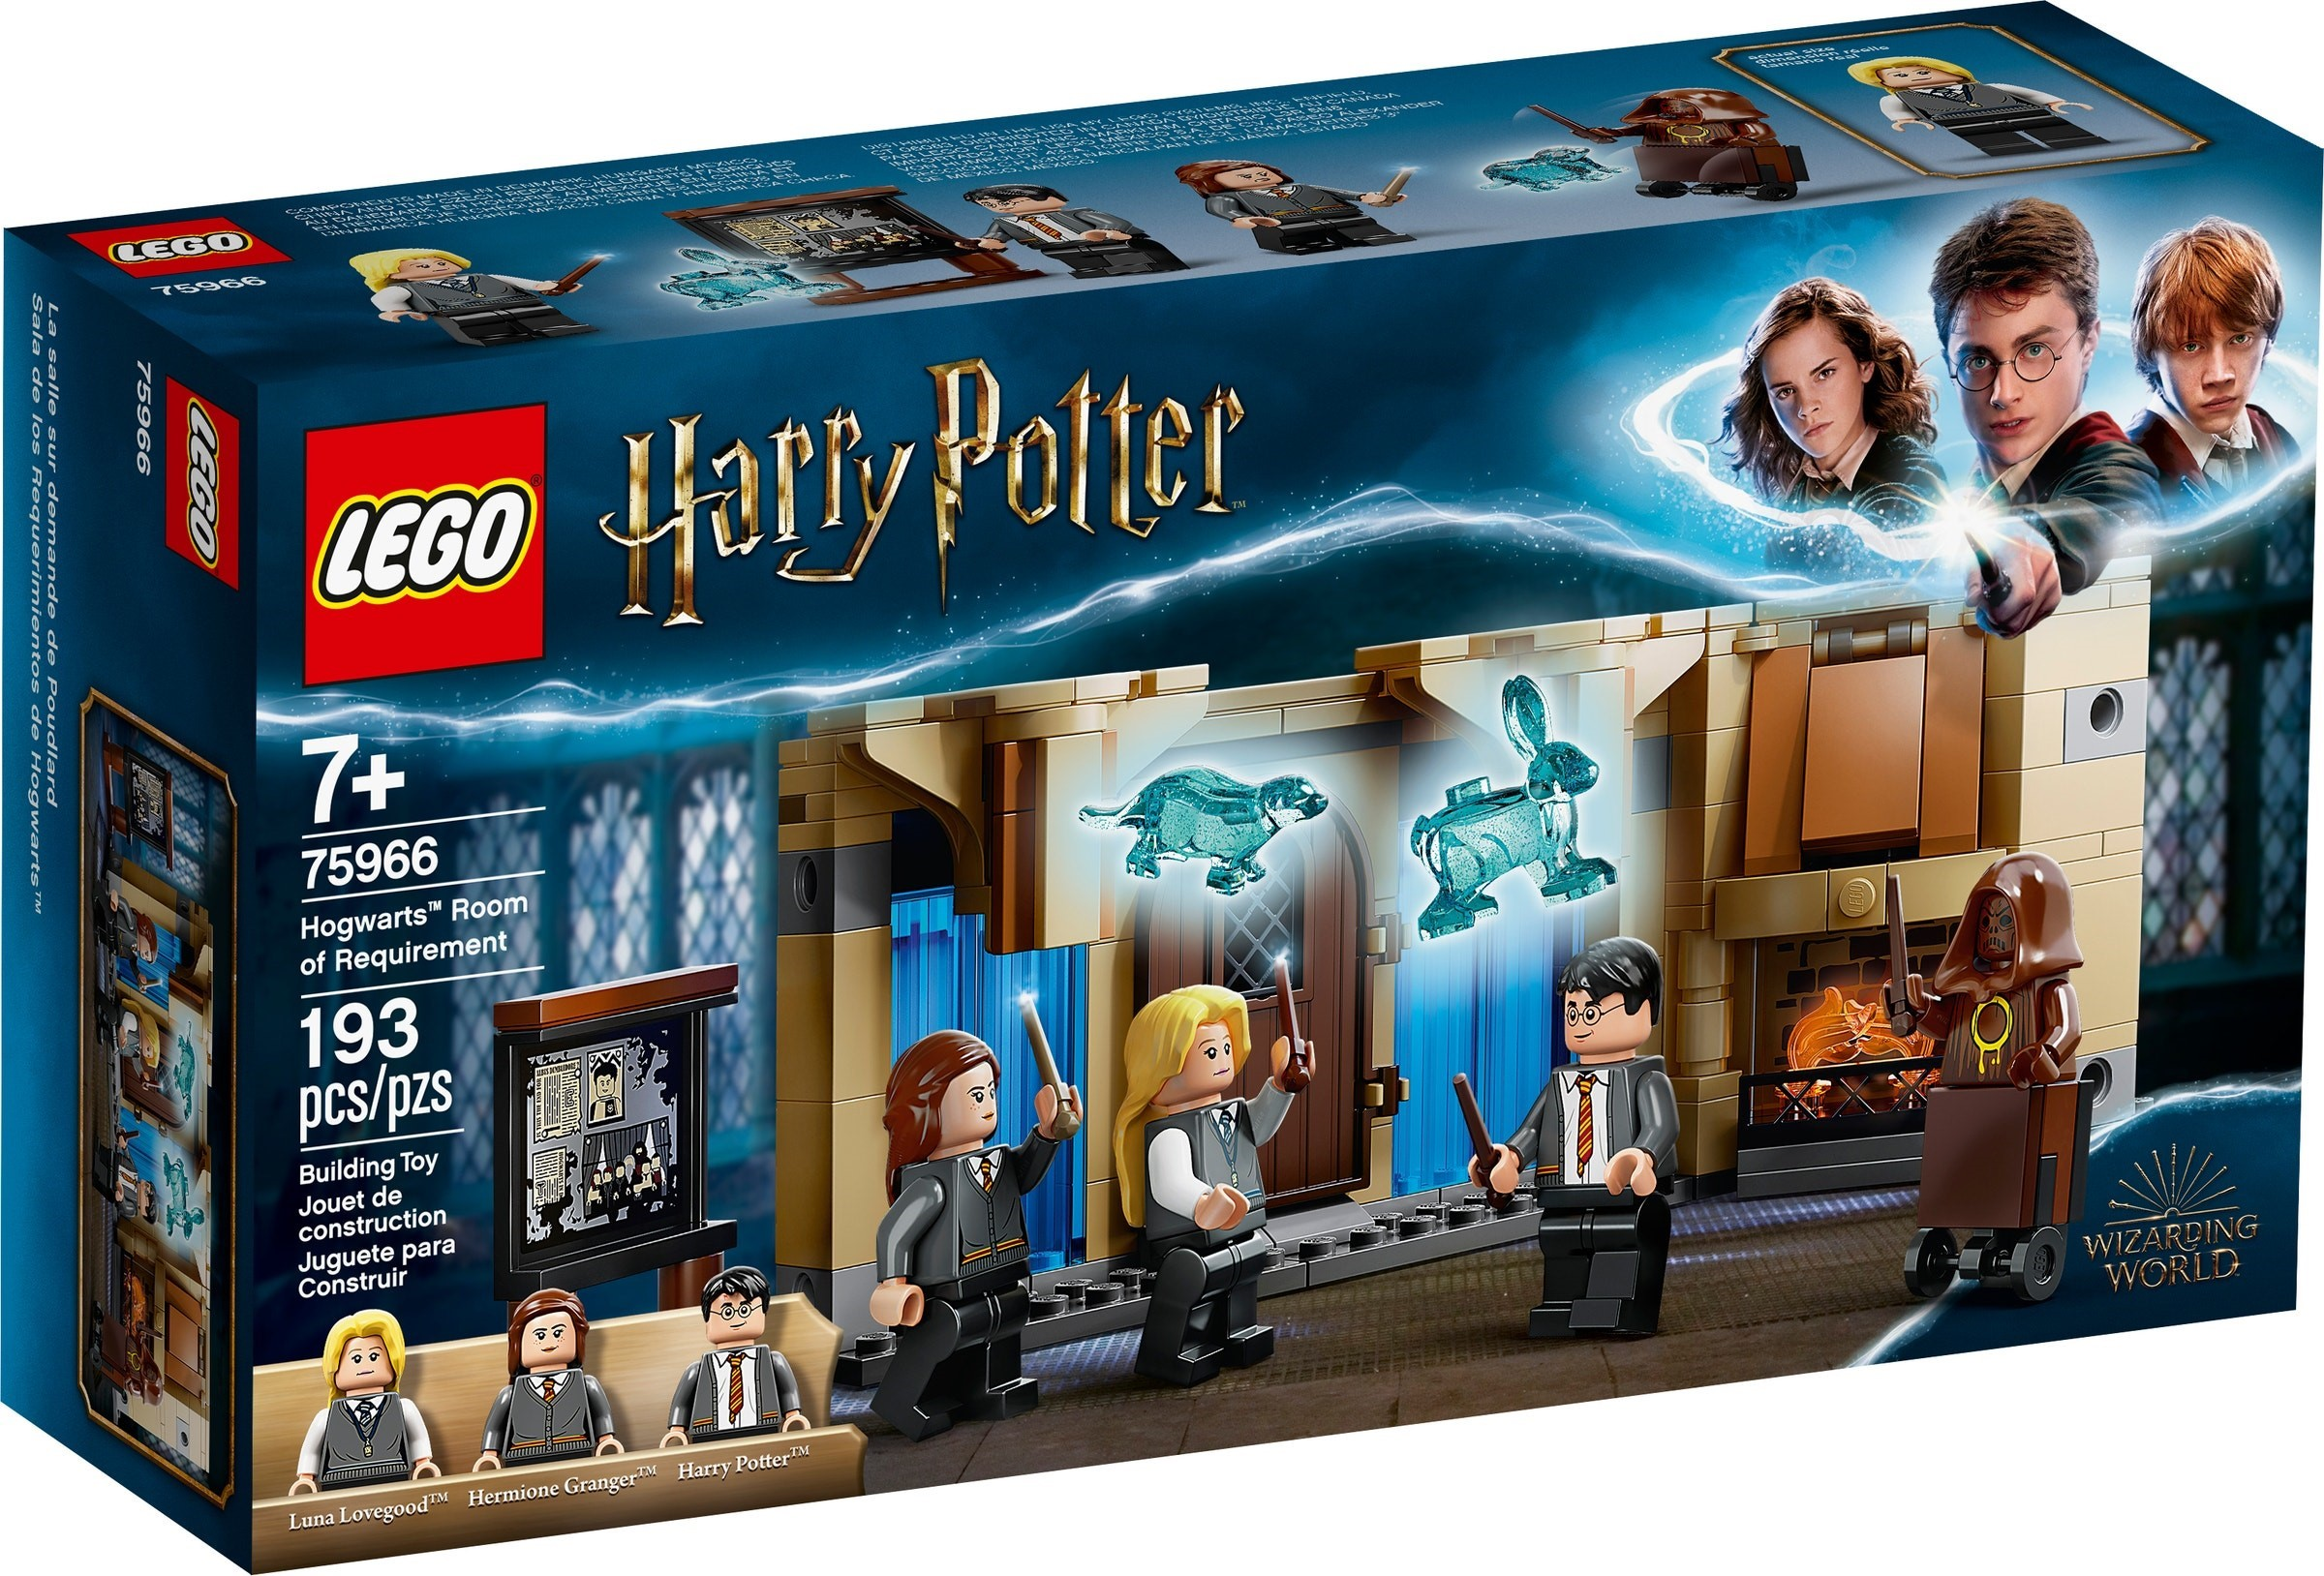 75966 LEGO Harry Potter Hogwarts Room of Requirement (2020)